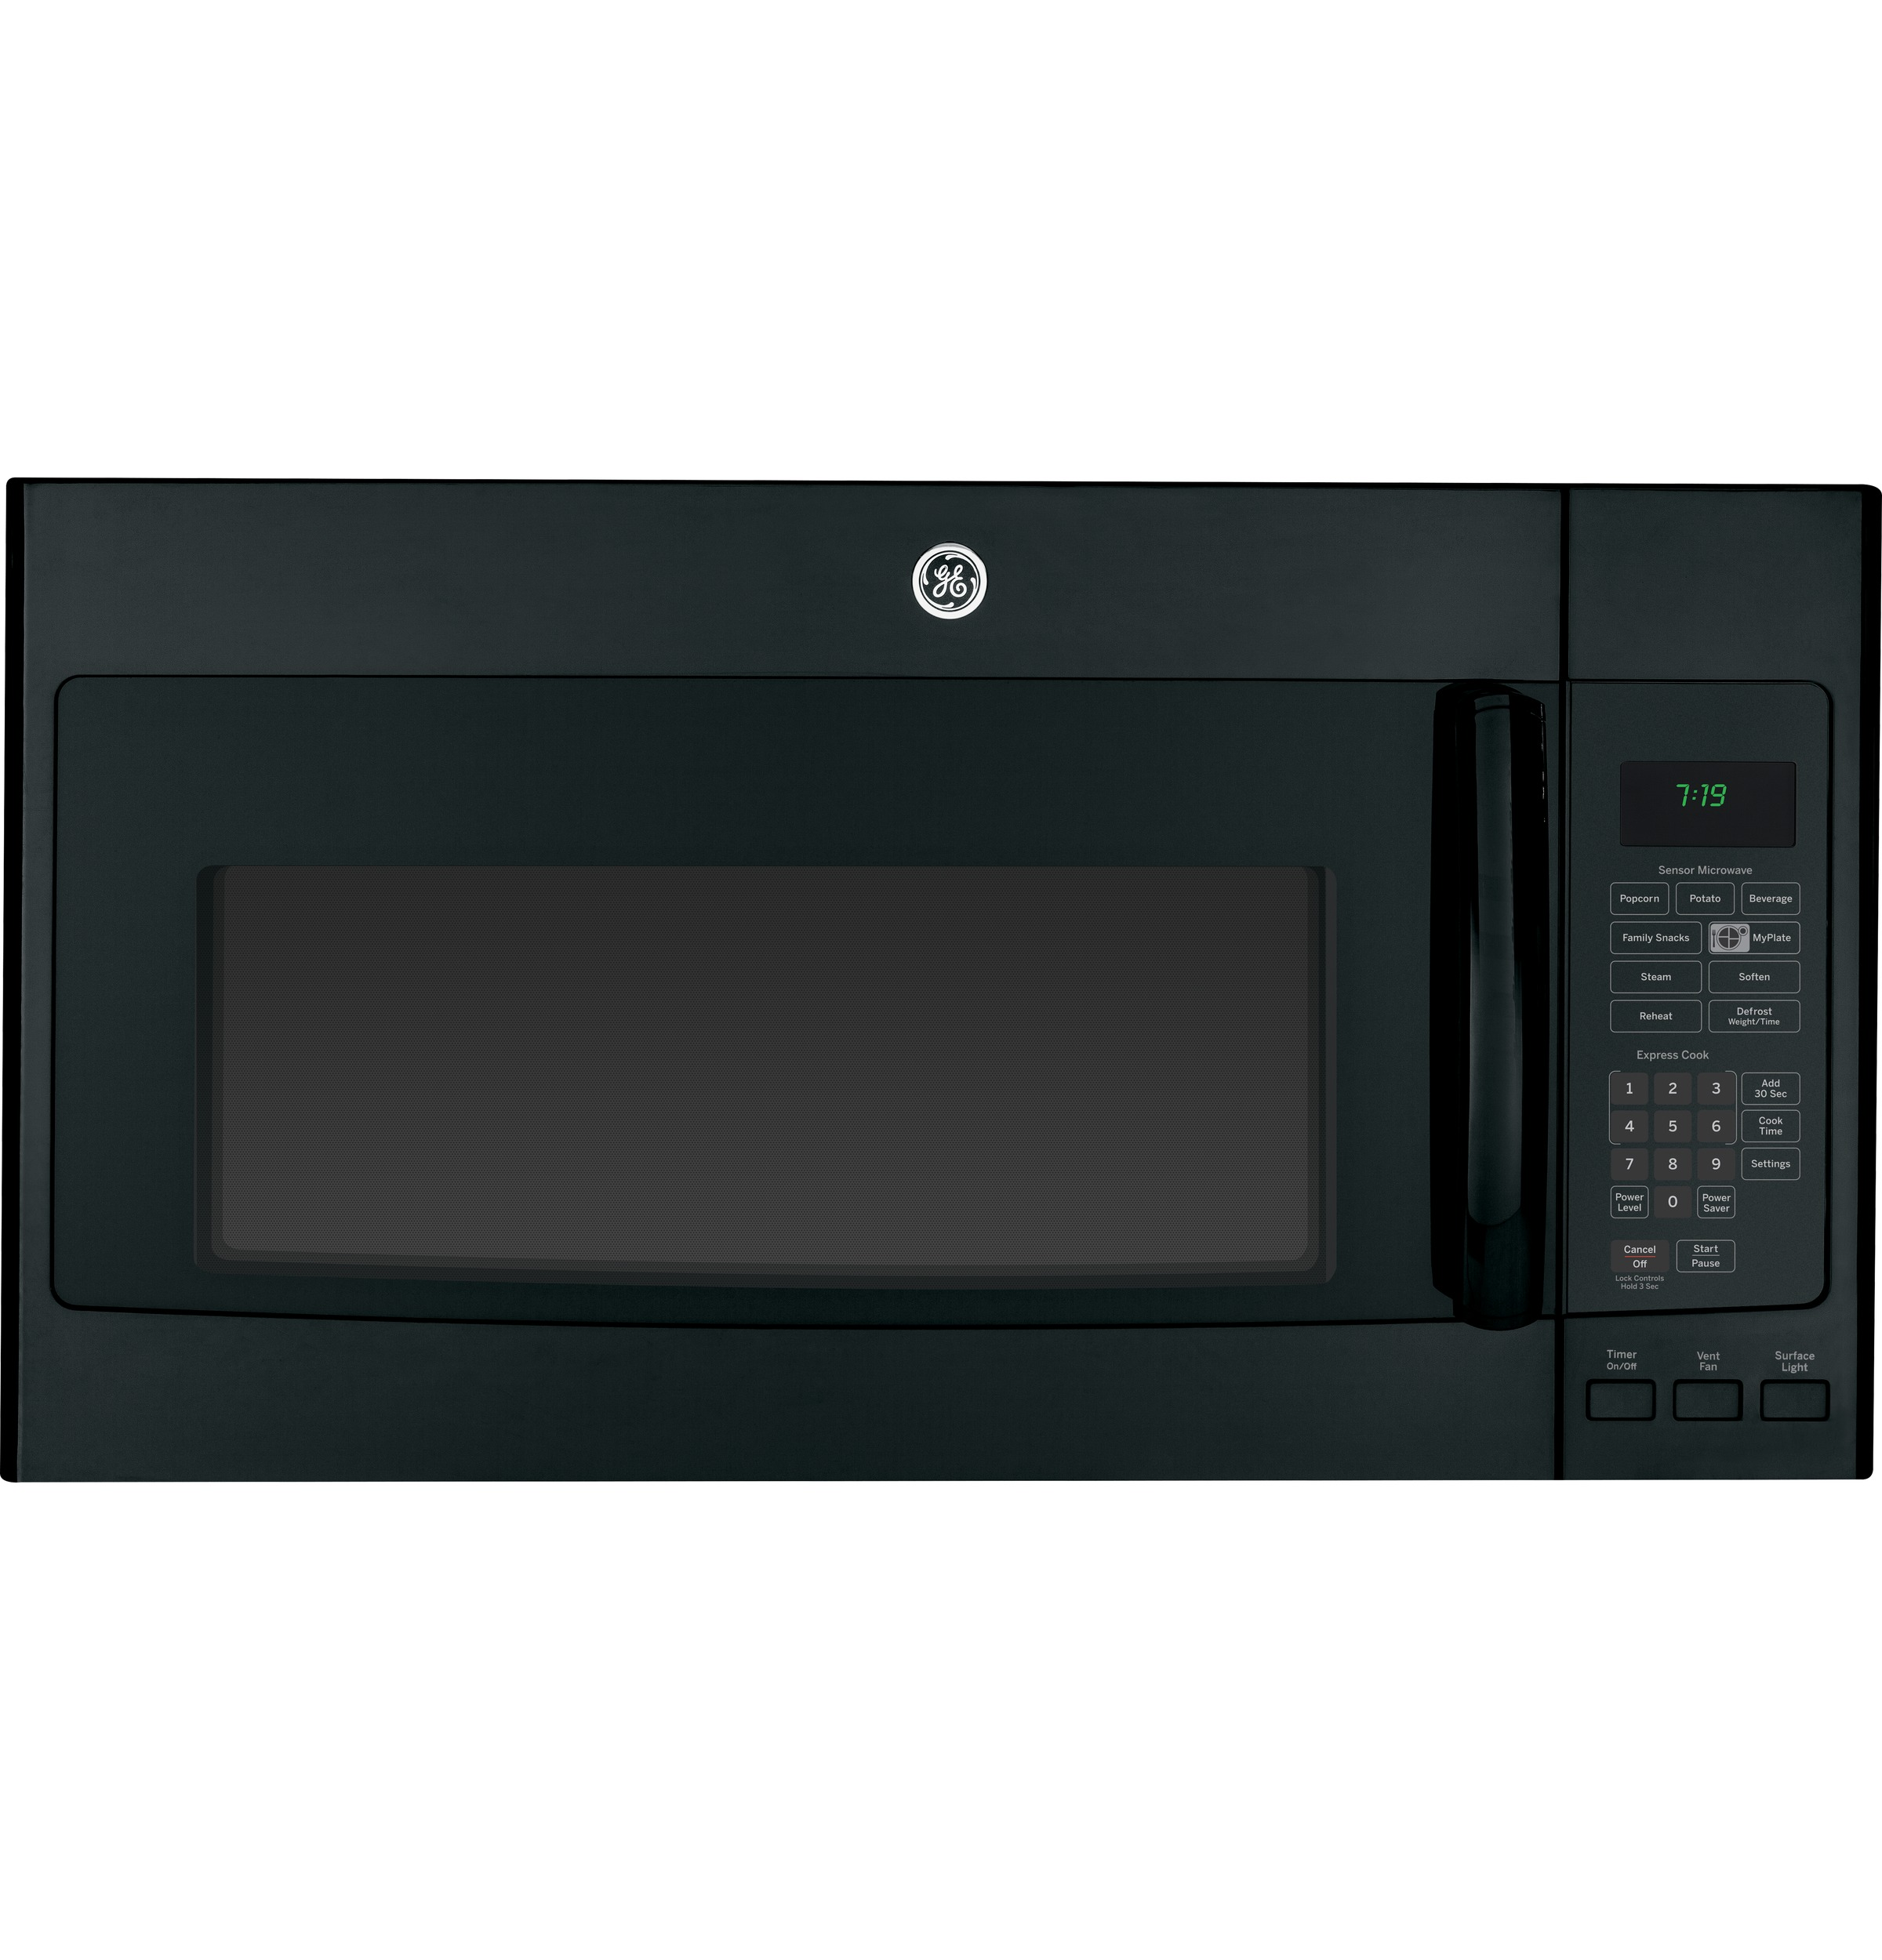 ge® series 1 9 cu ft over the range sensor microwave oven product image